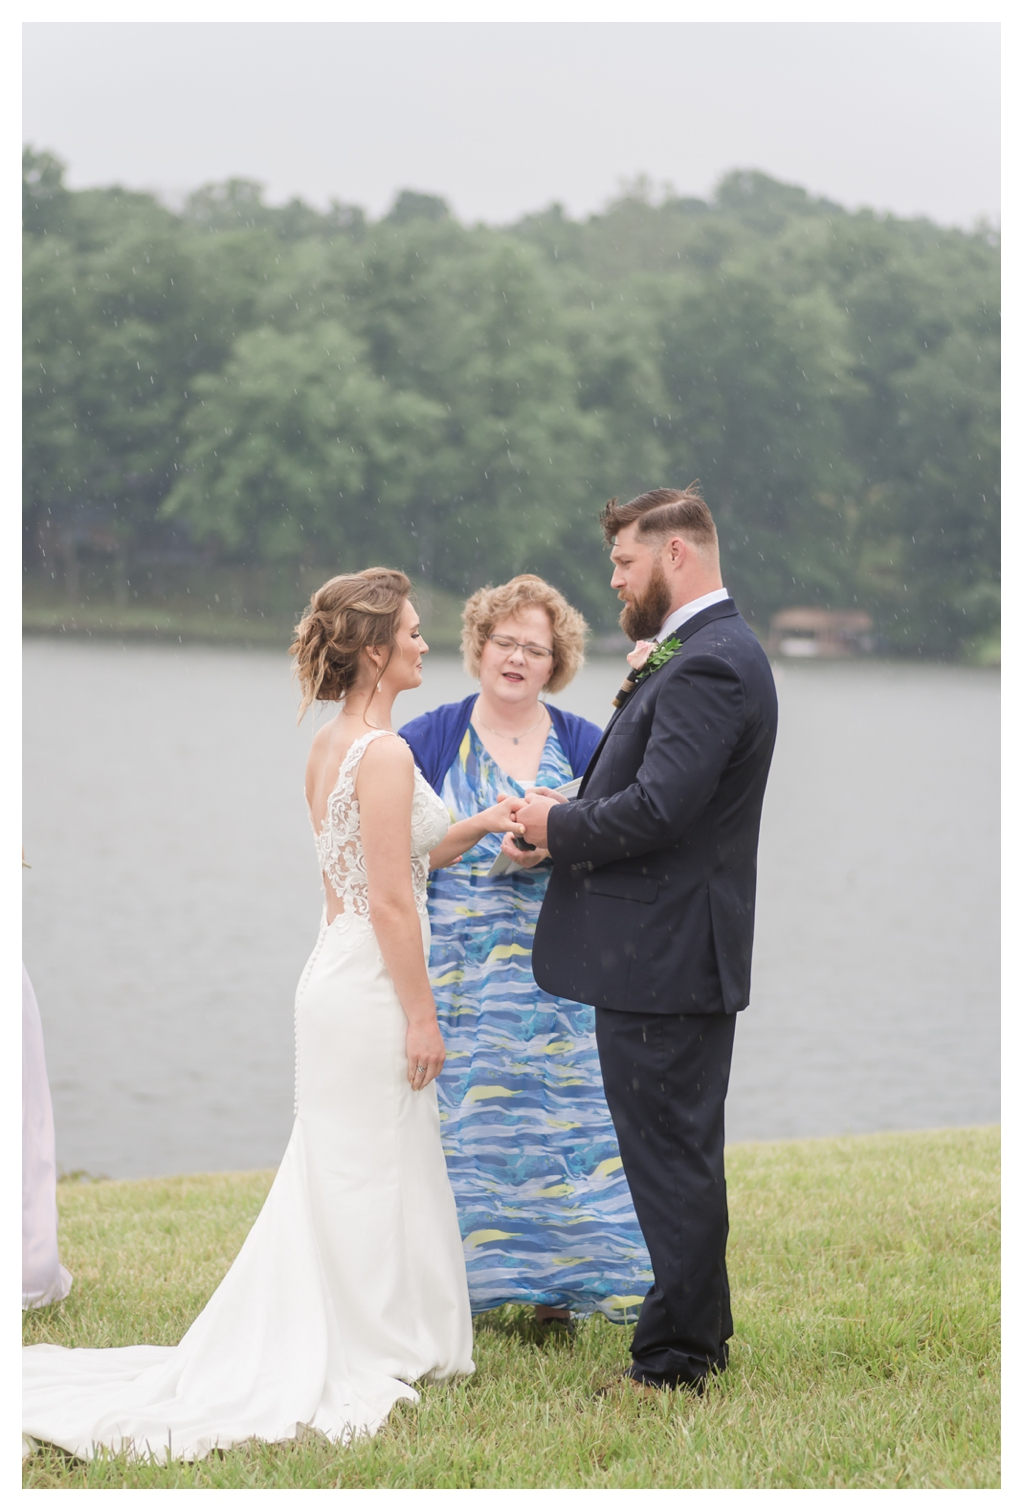 What if it rains on your wedding day?_1091.jpg